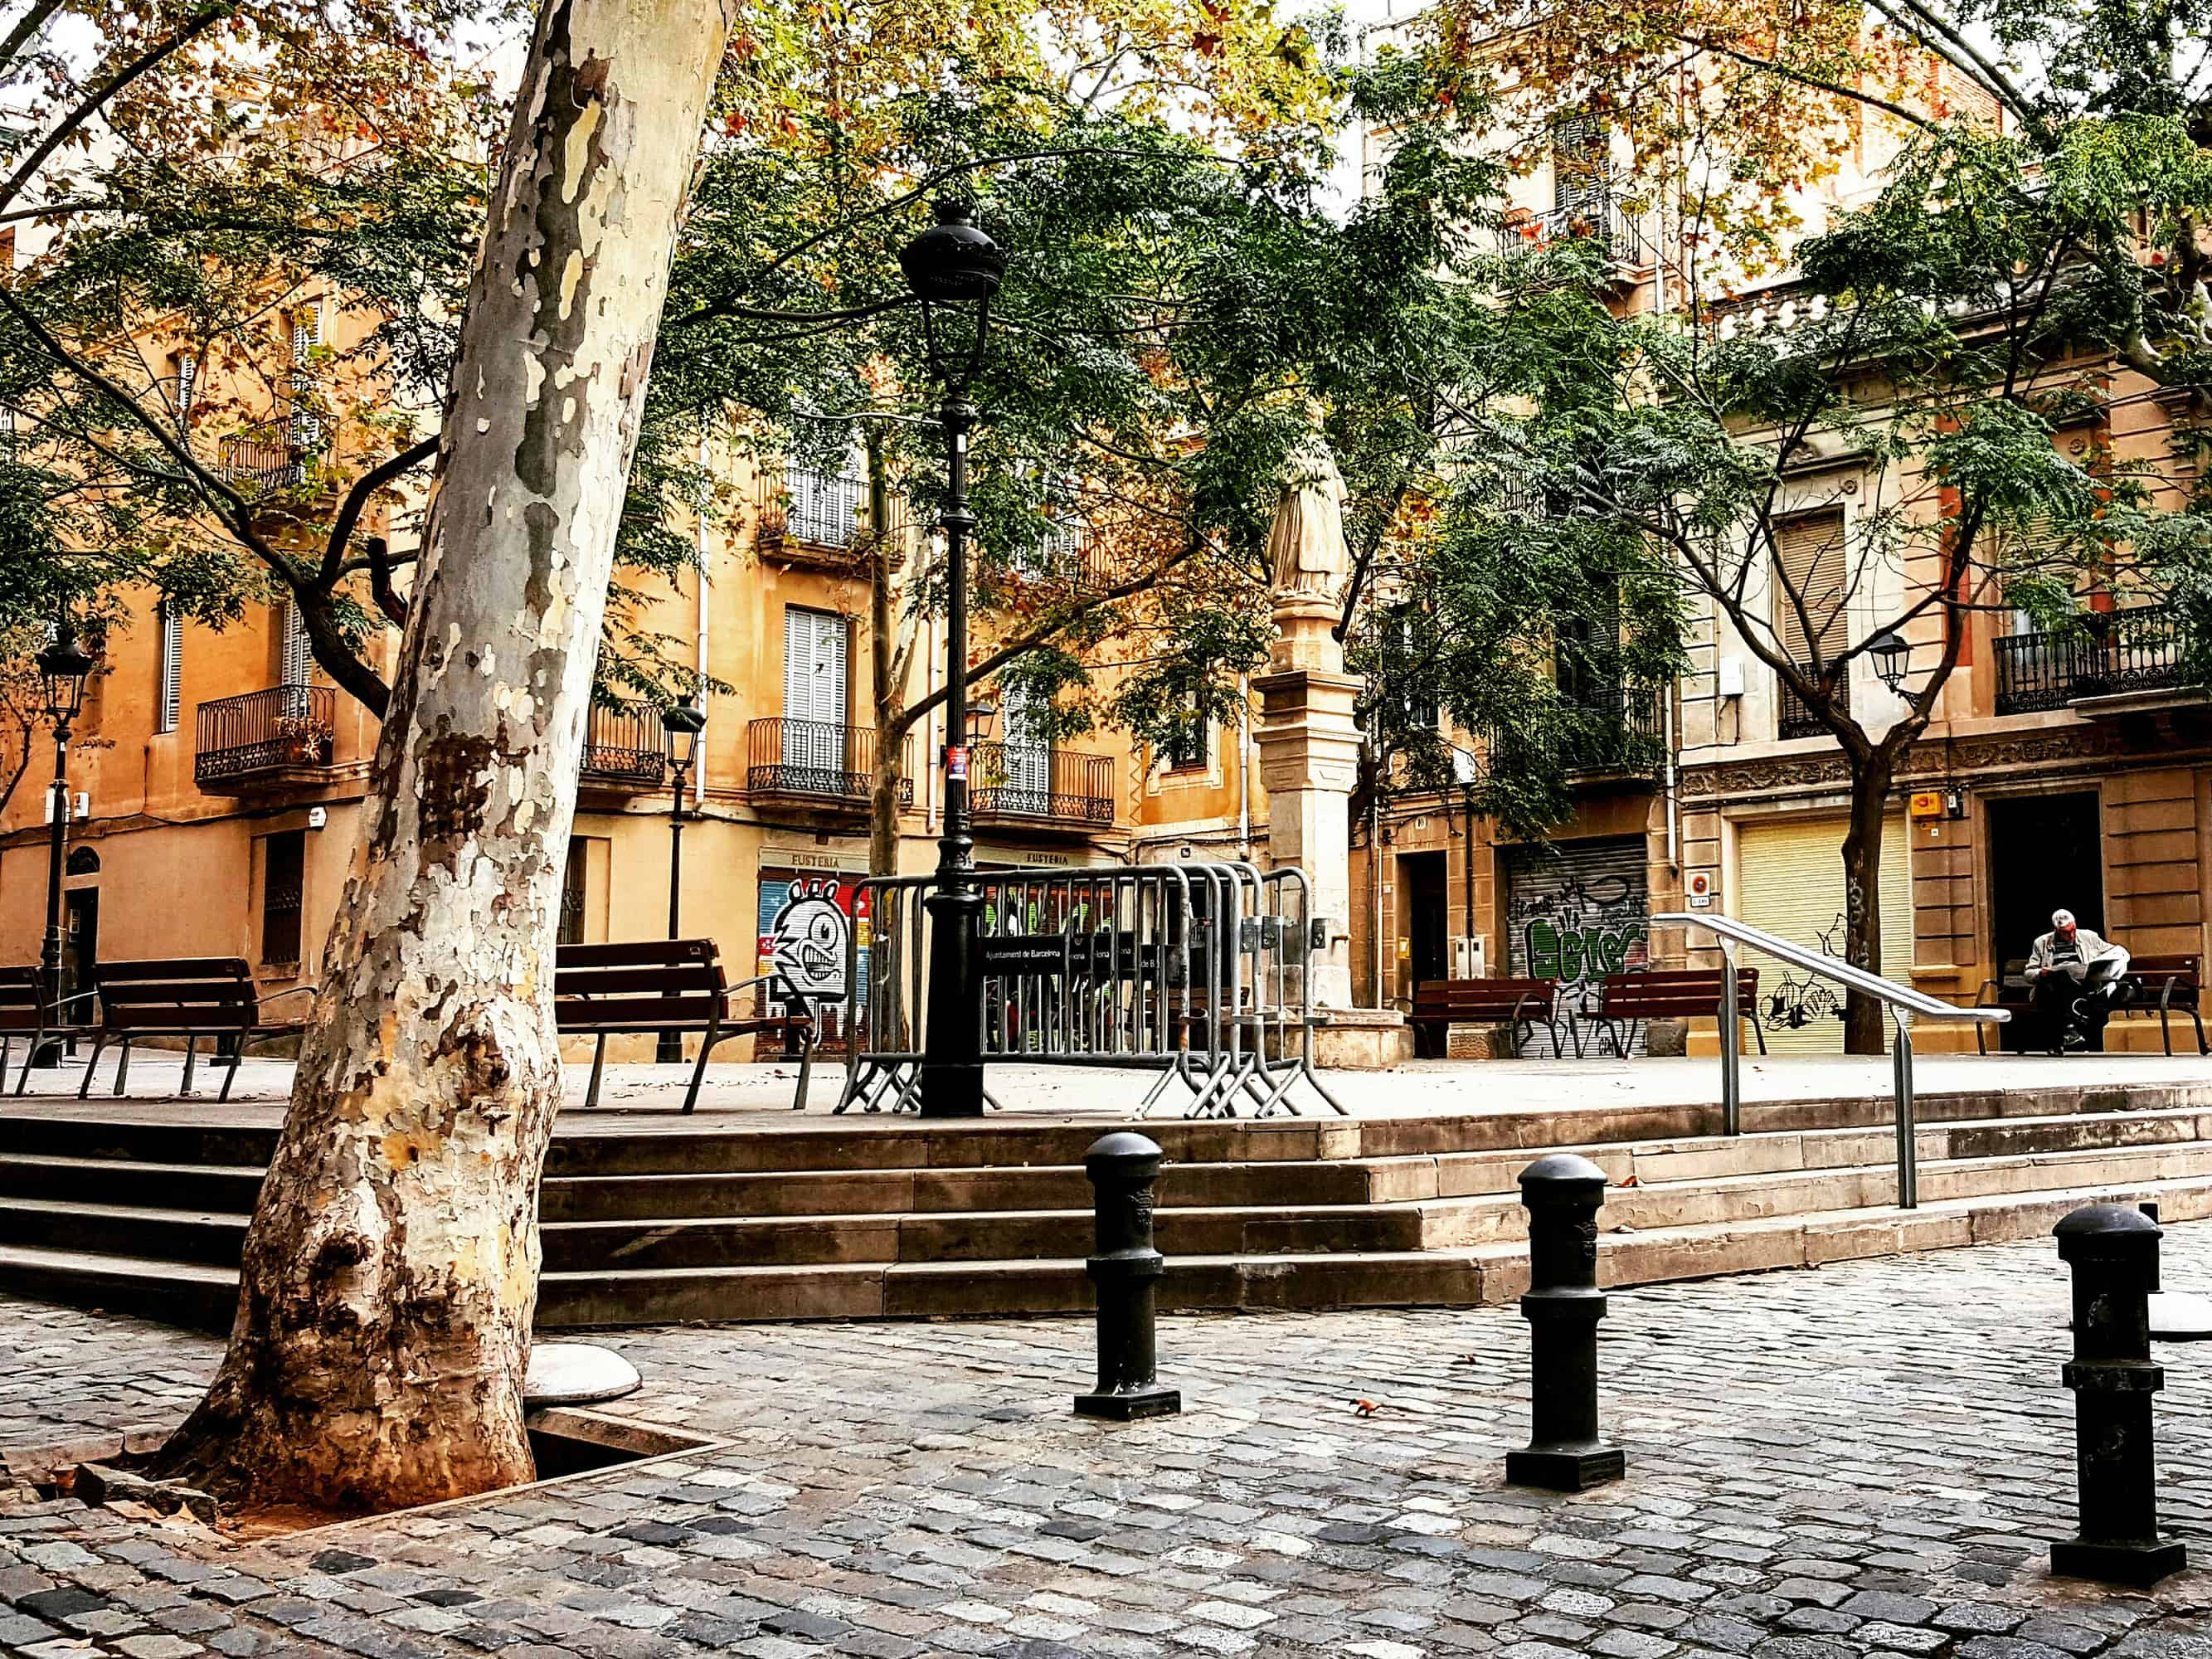 Barcelona barrios - A peaceful little square in Sarria